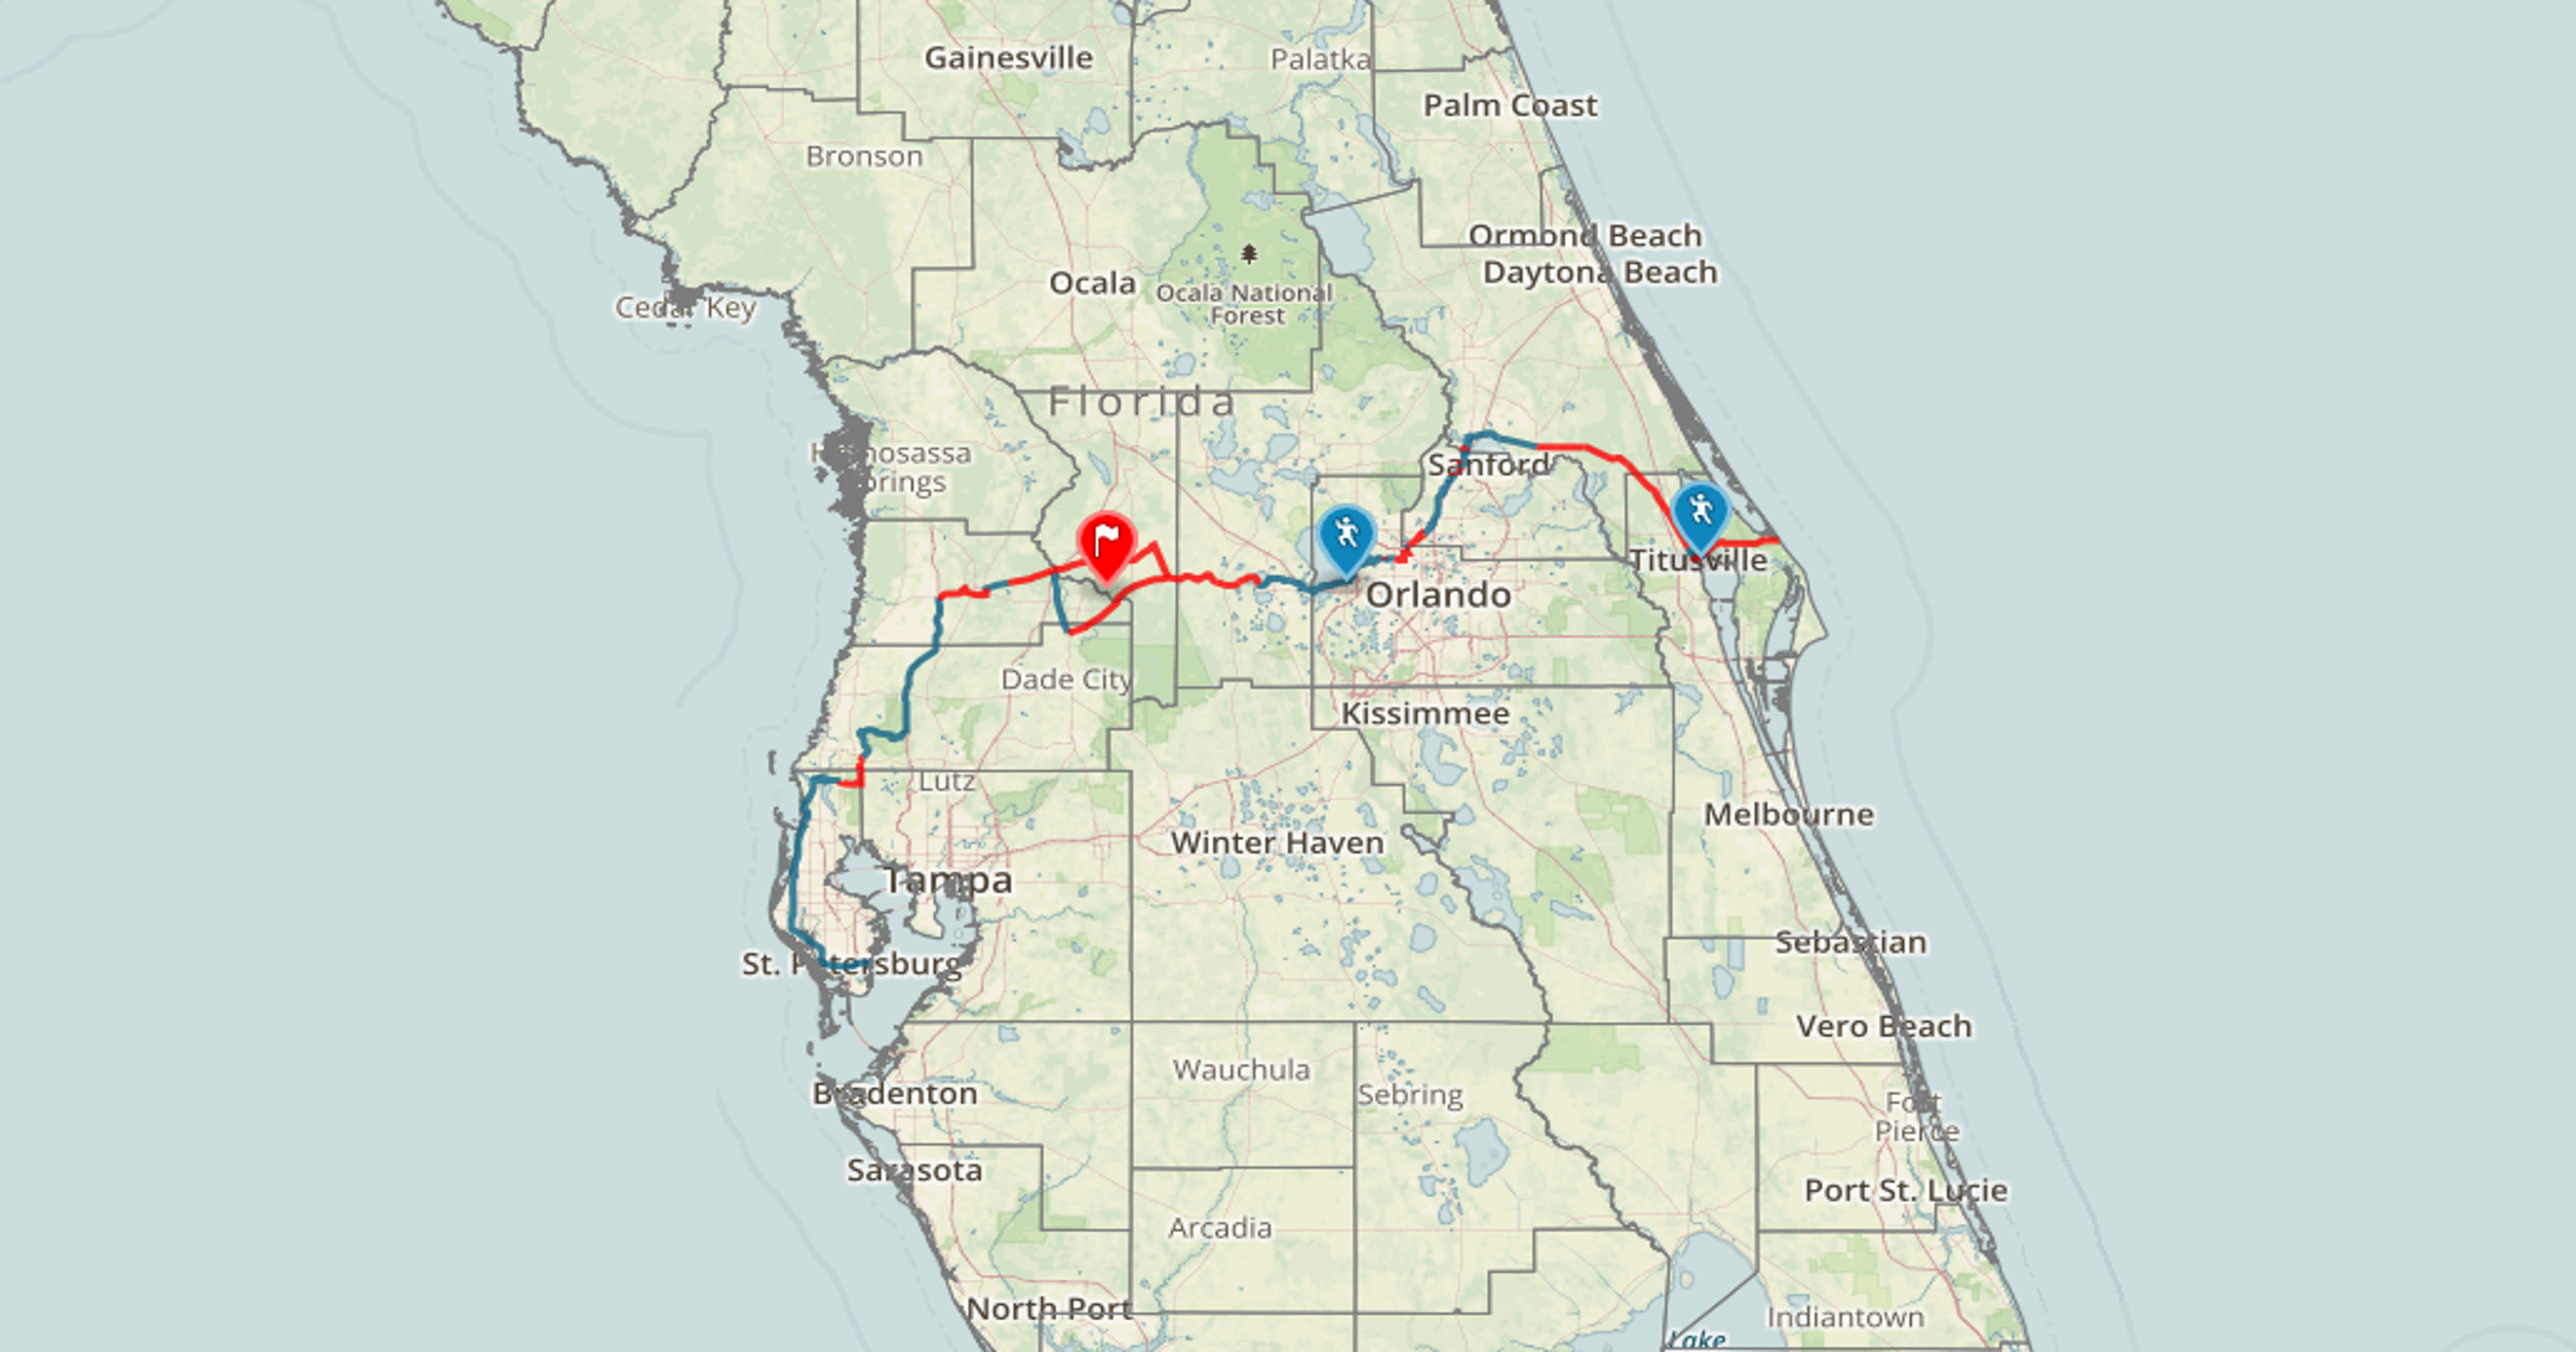 Interactive Florida S Coast To Coast Connector